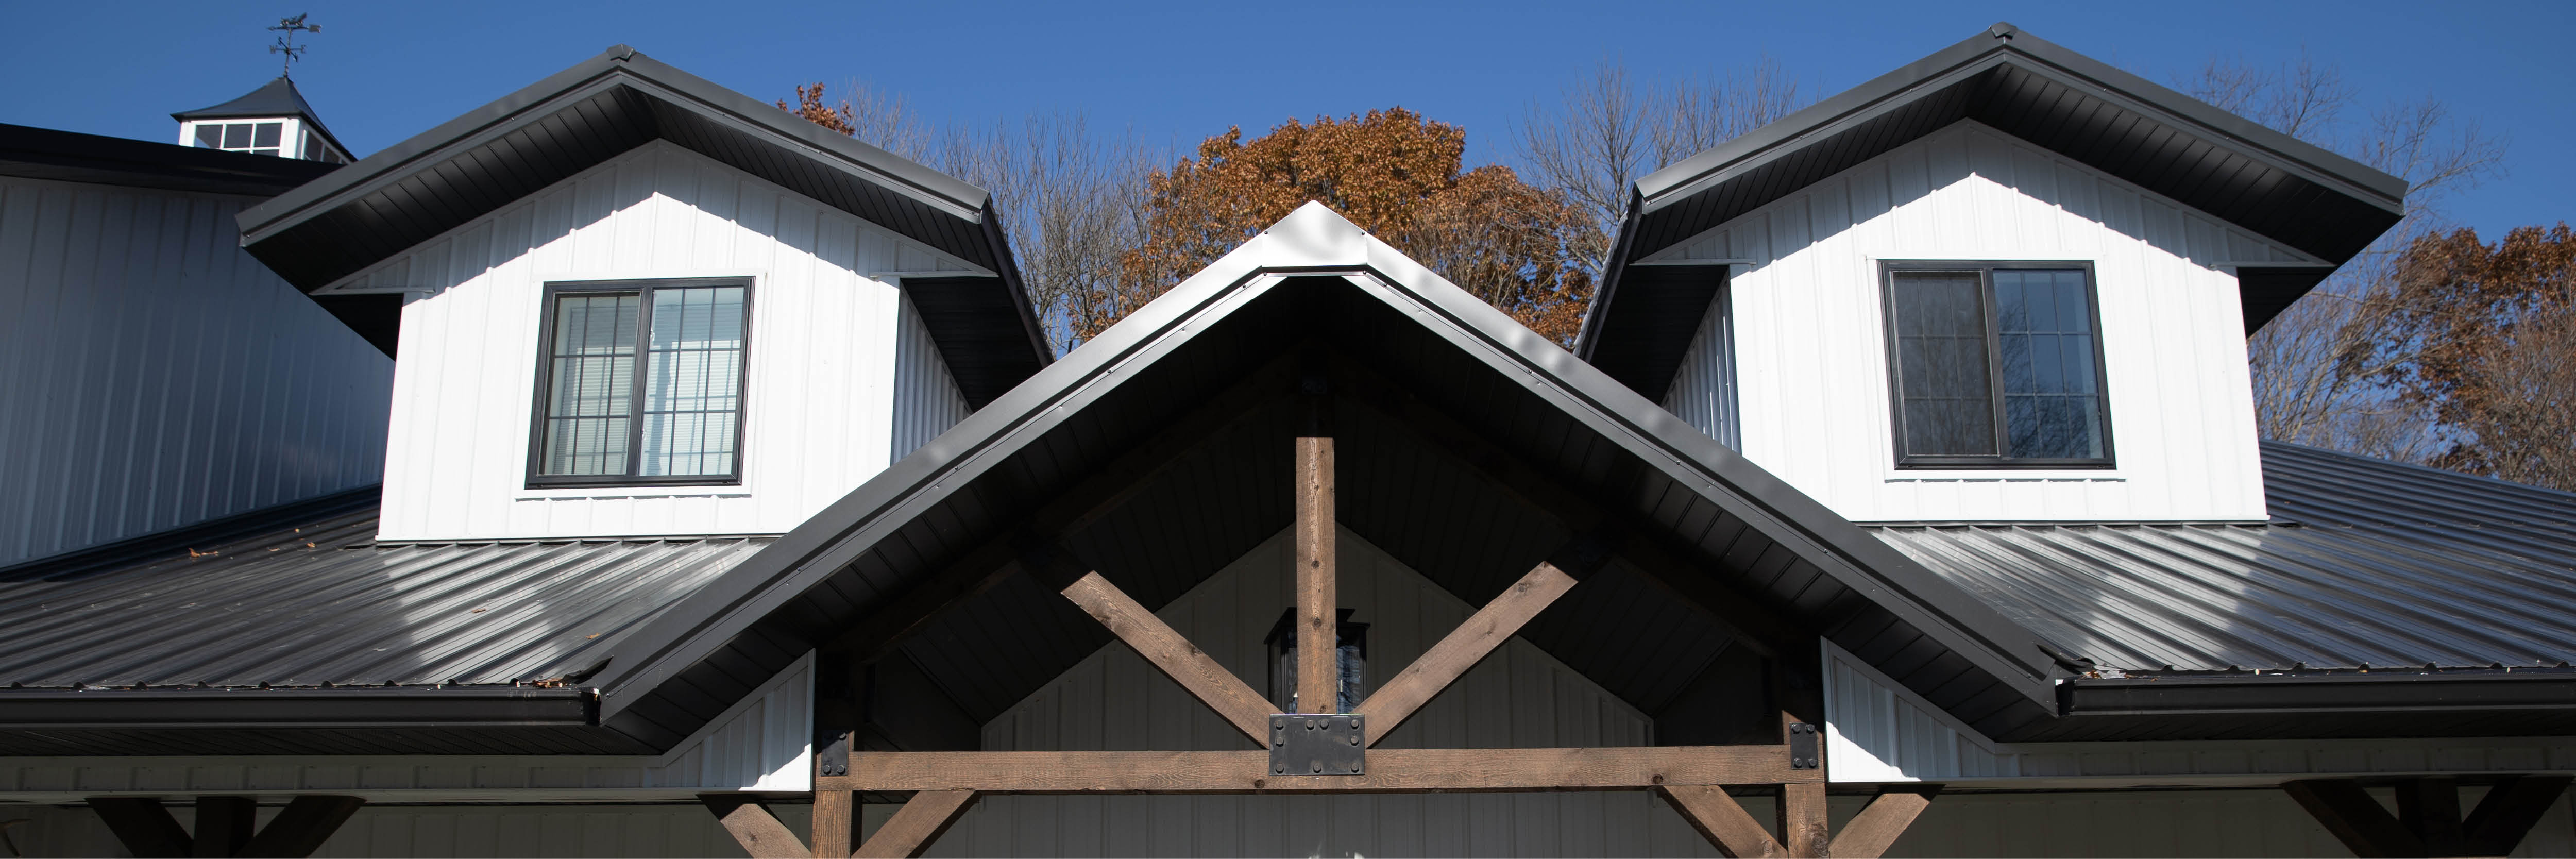 Metal Roofing vs Shingles: Which One is Right for You?